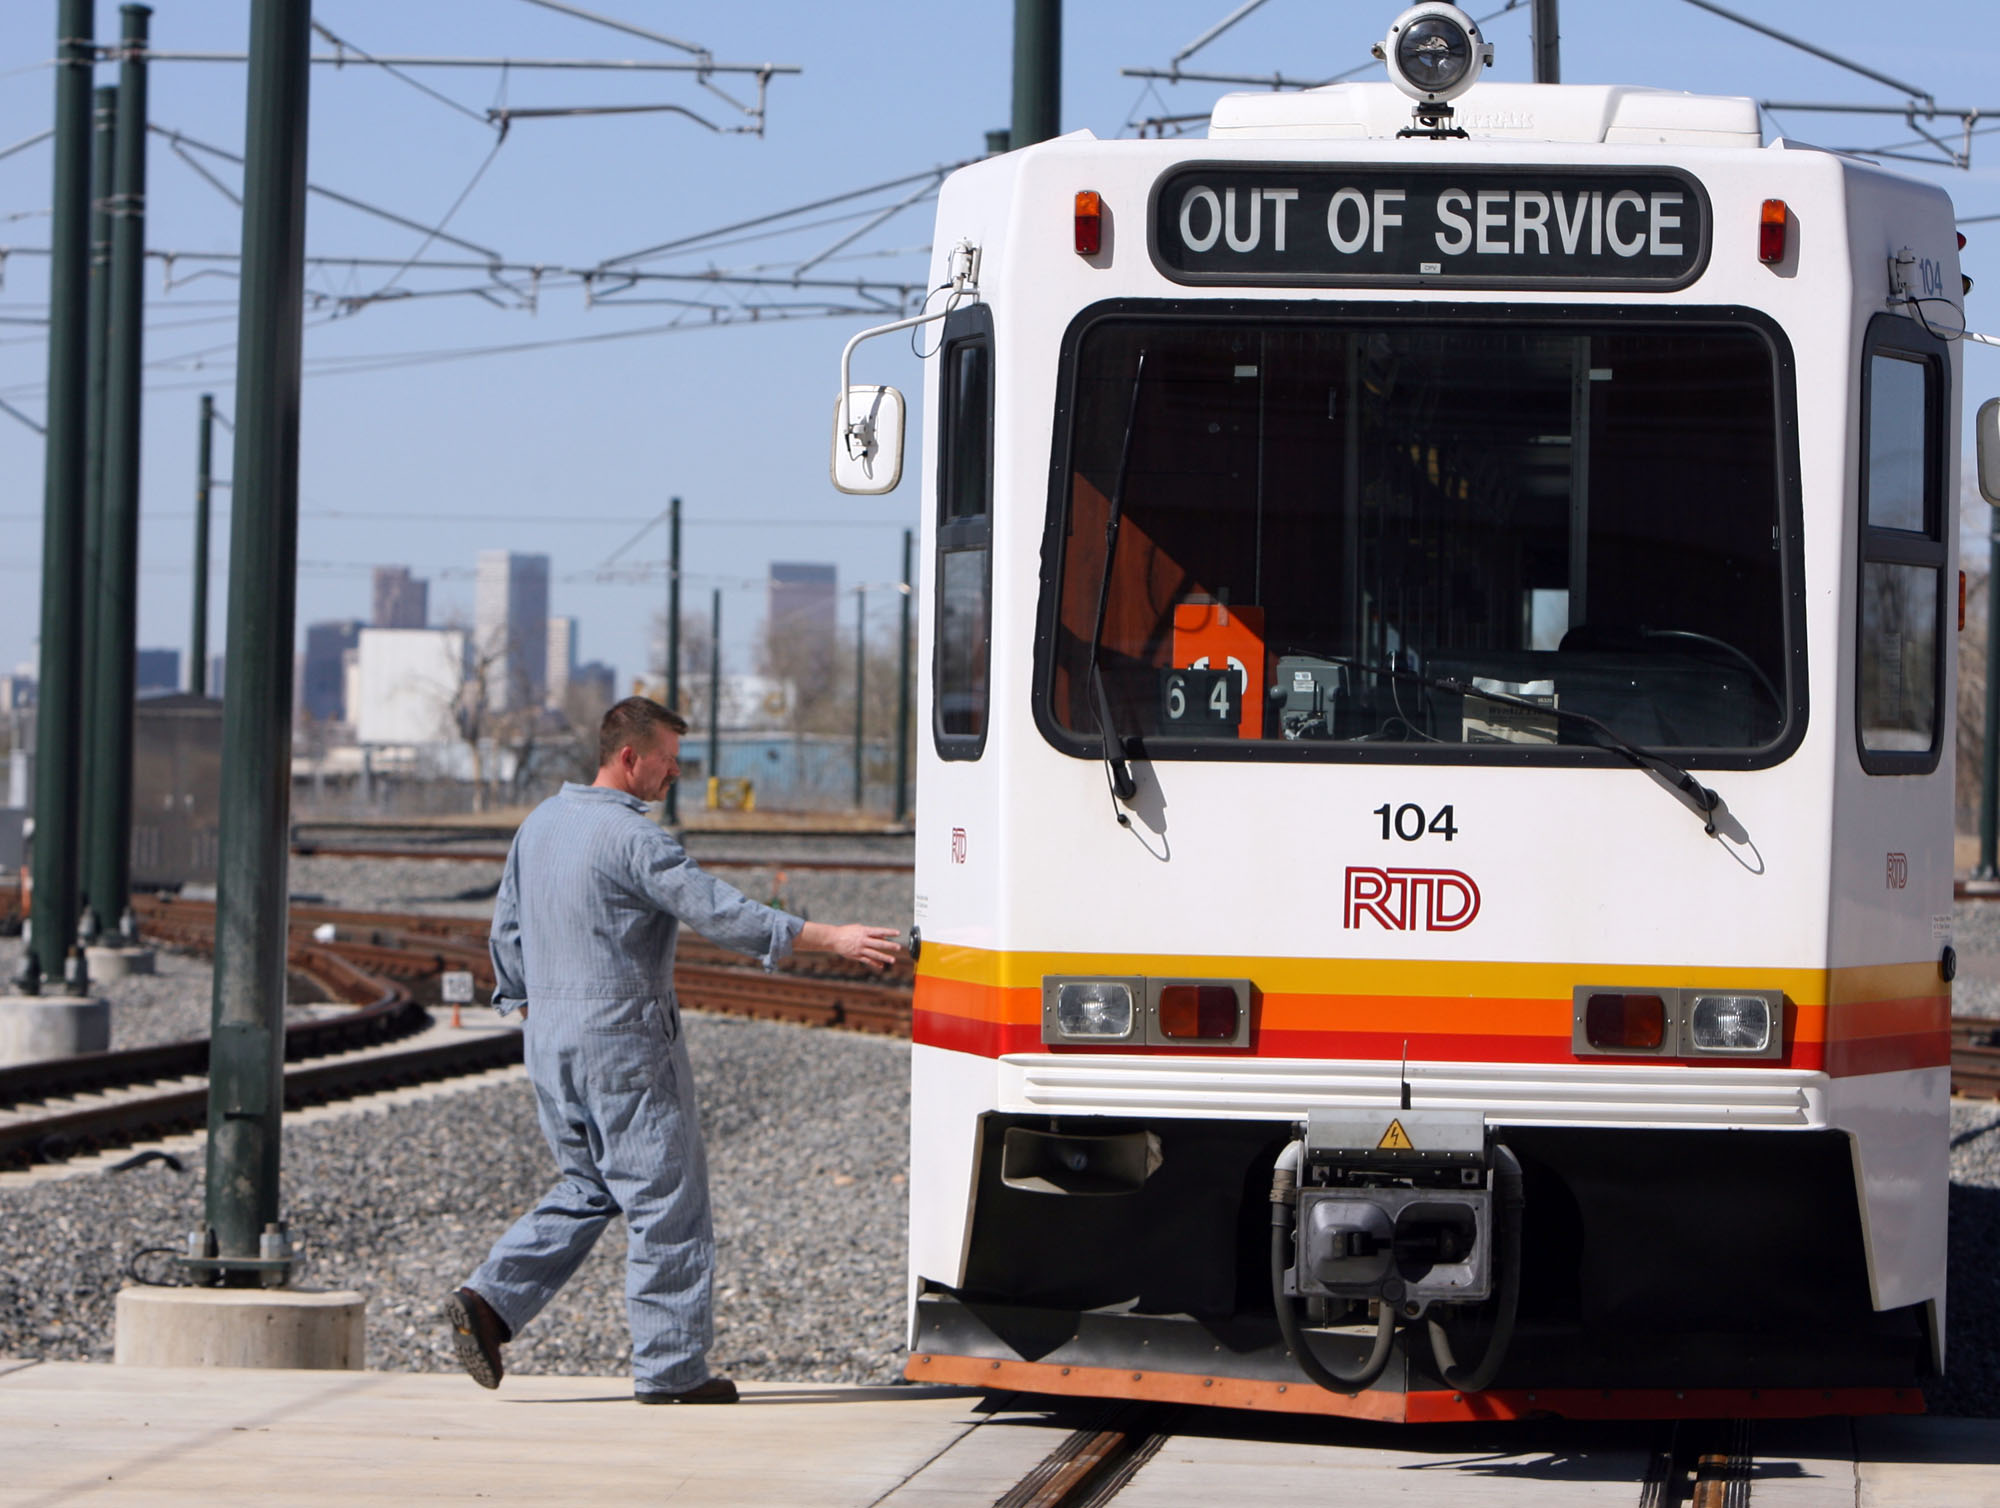 WORKER RTD LIGHT RAIL TRAIN